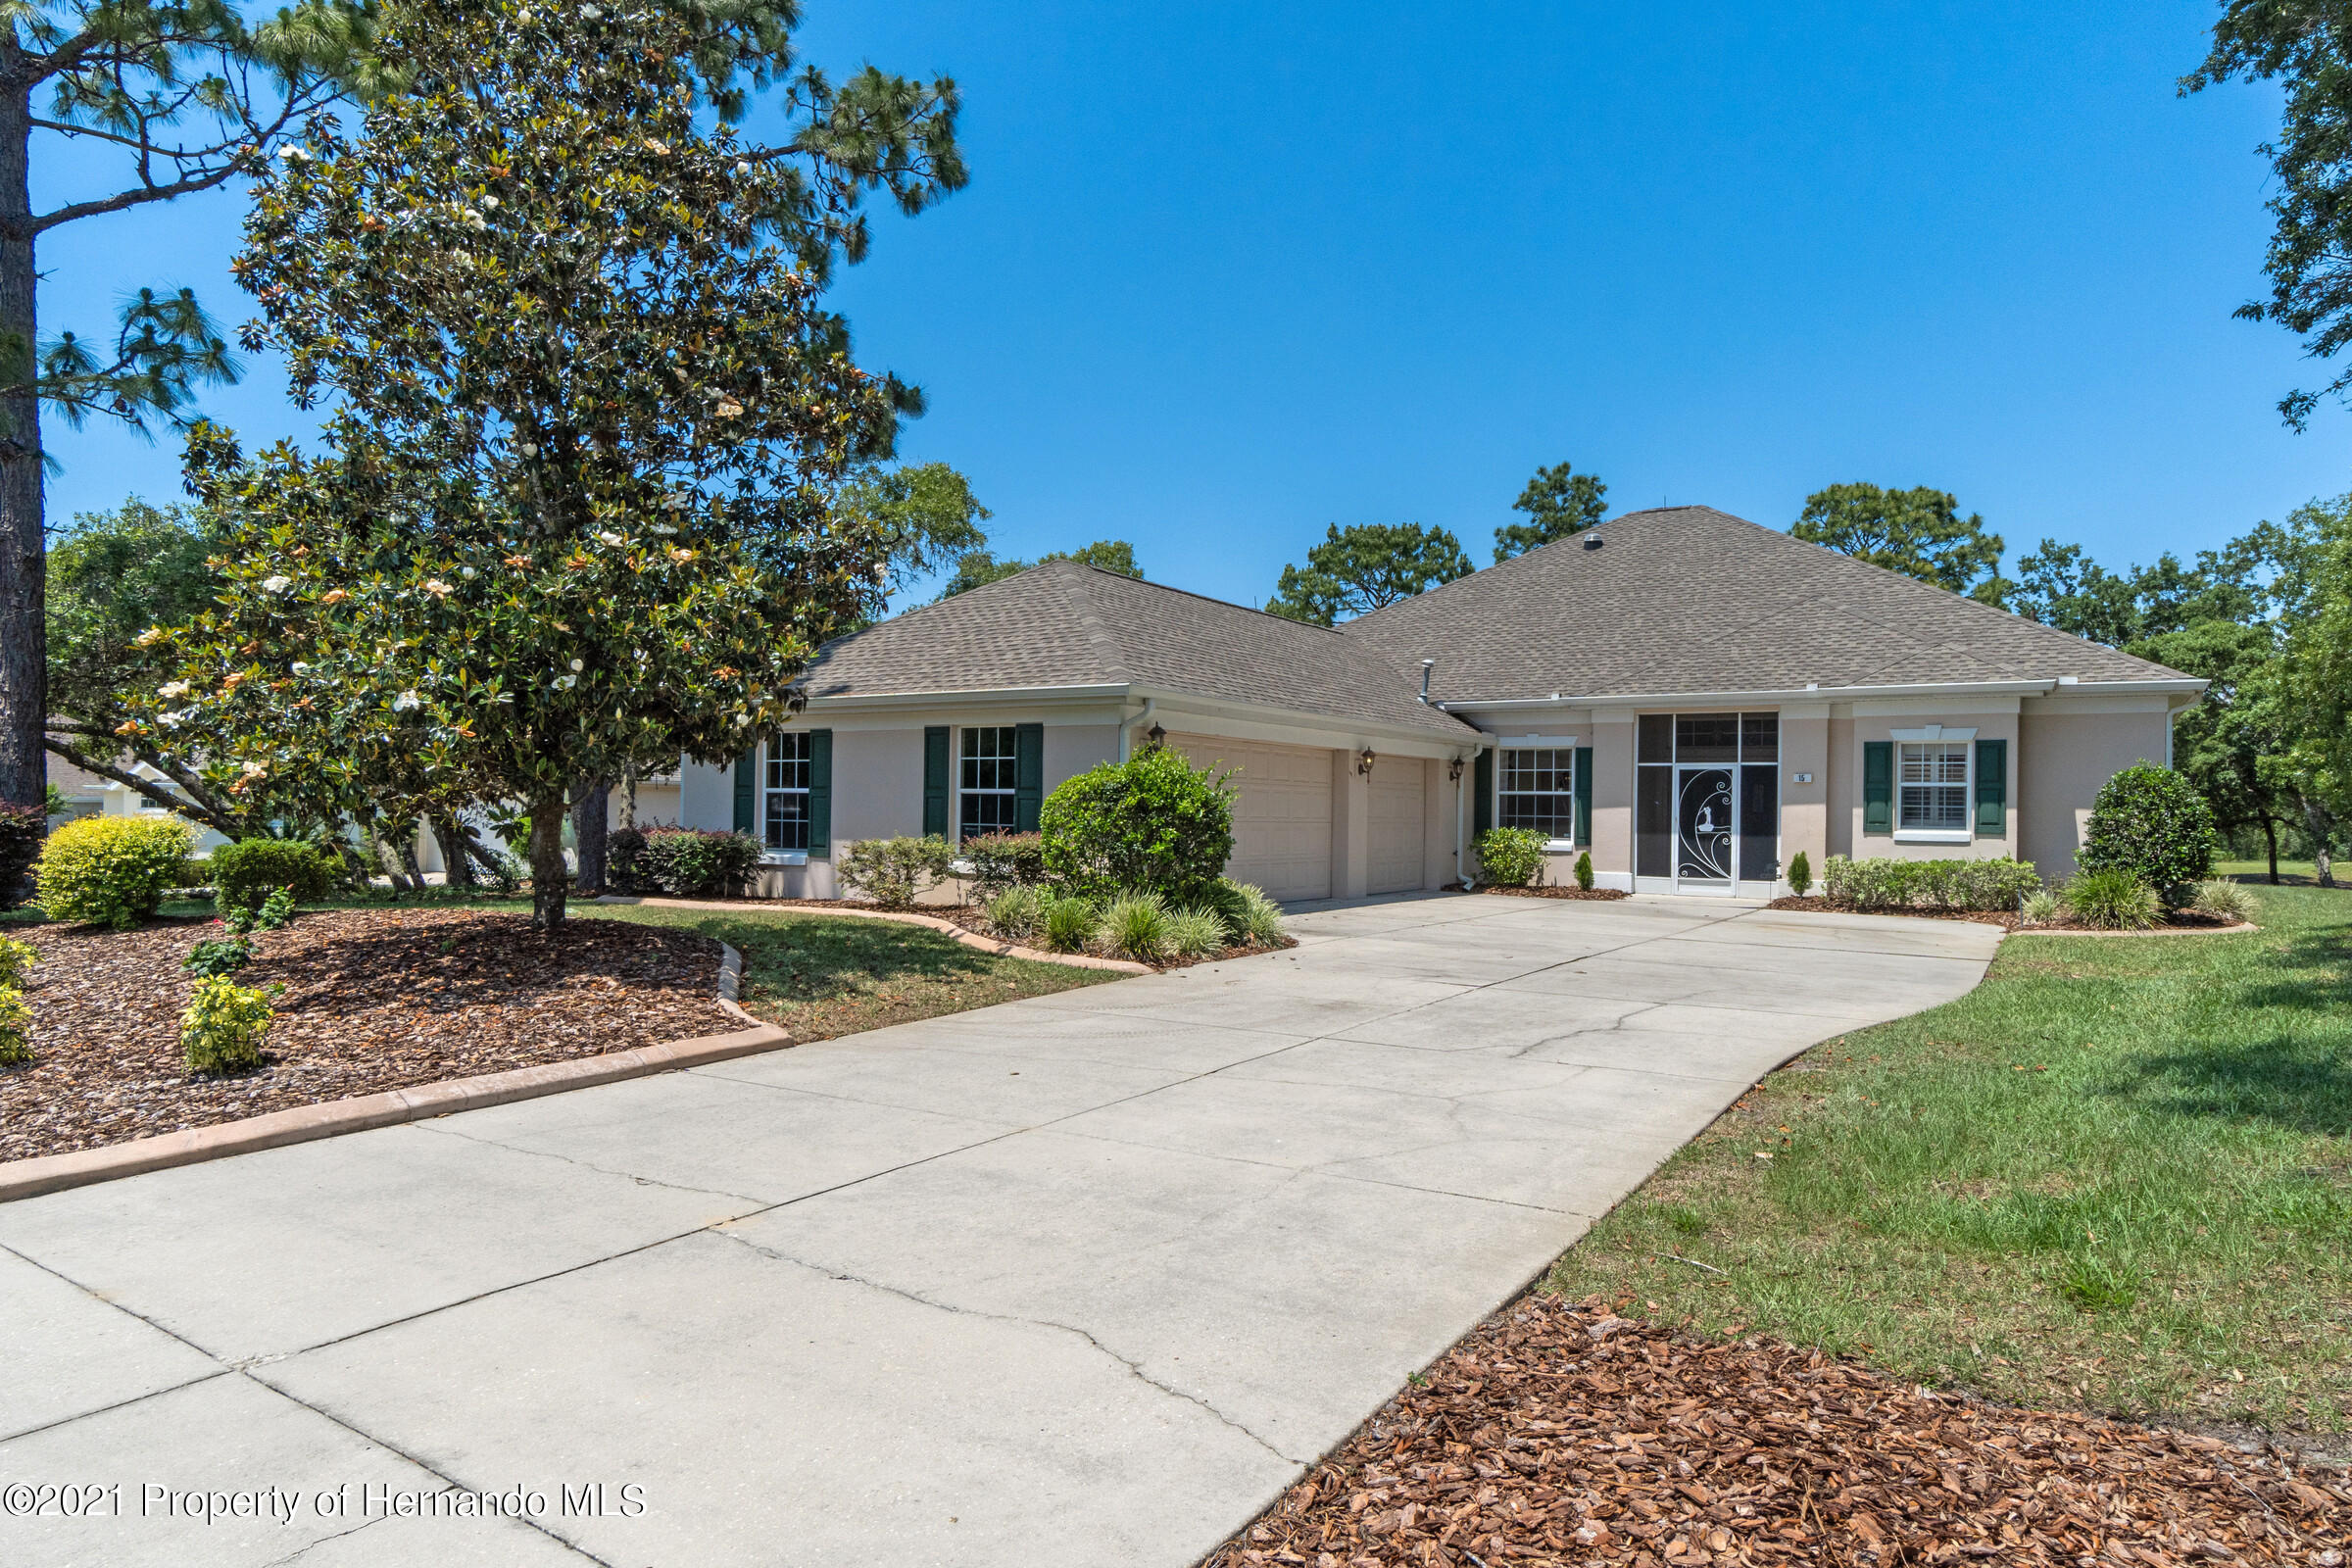 Details for 15 Deerwood Drive, Homosassa, FL 34446